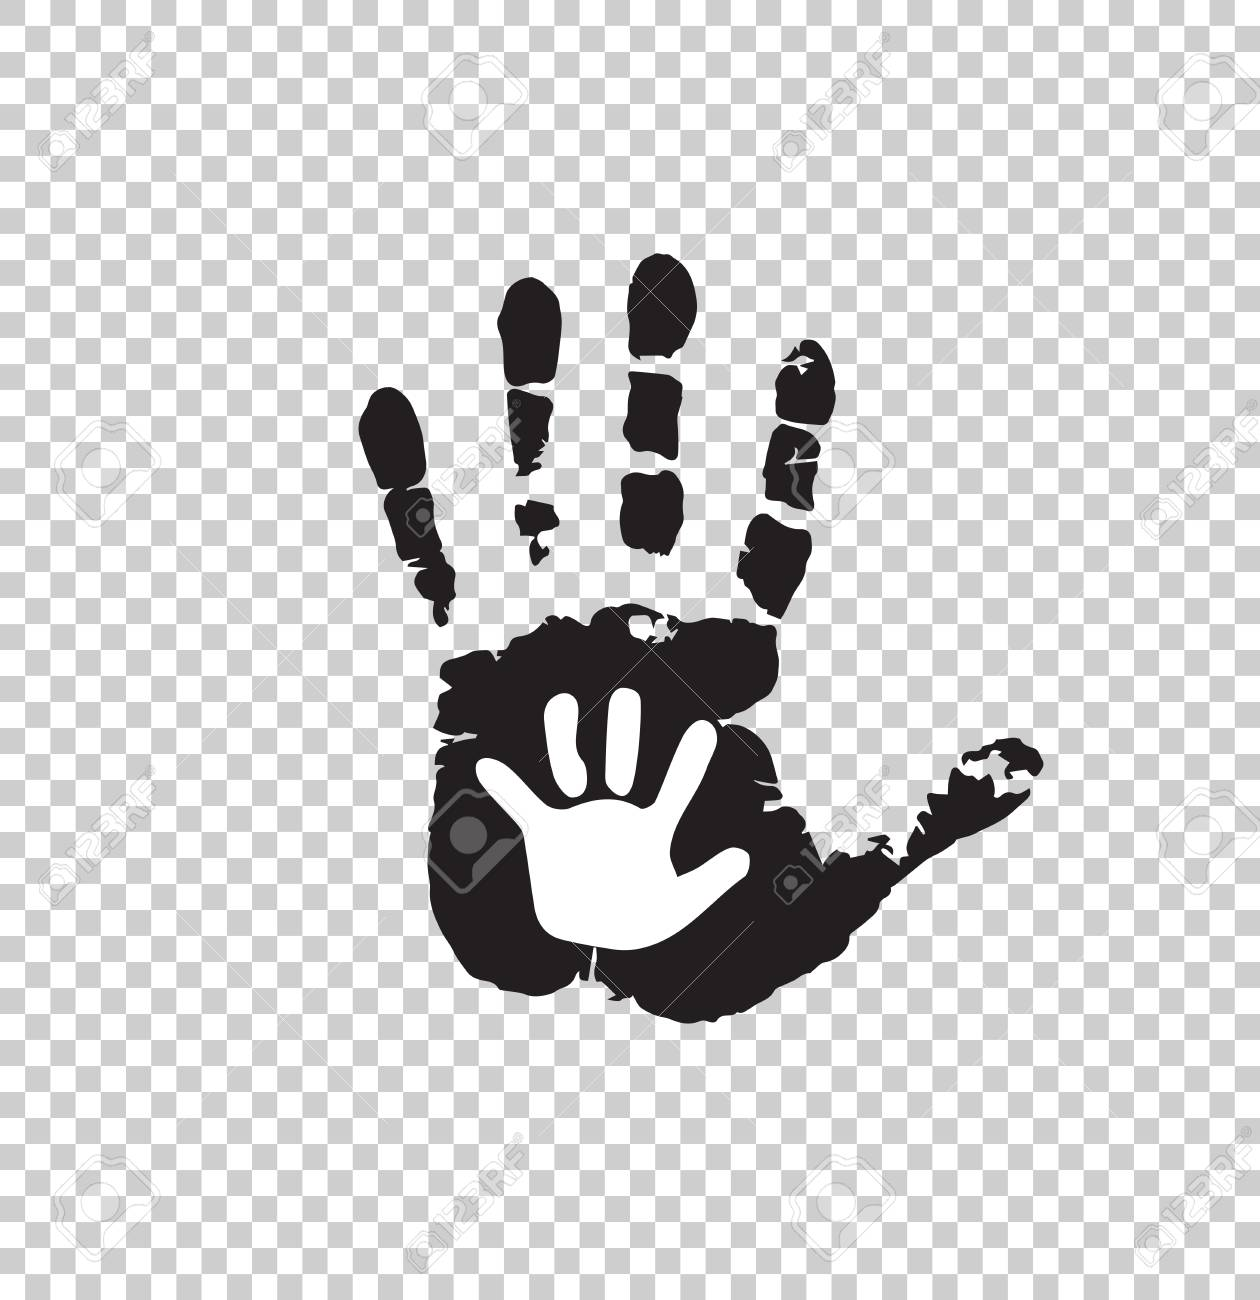 Black And White Silhouette Of Adult And Baby Hand Isolated On Royalty Free Cliparts Vectors And Stock Illustration Image 95631575